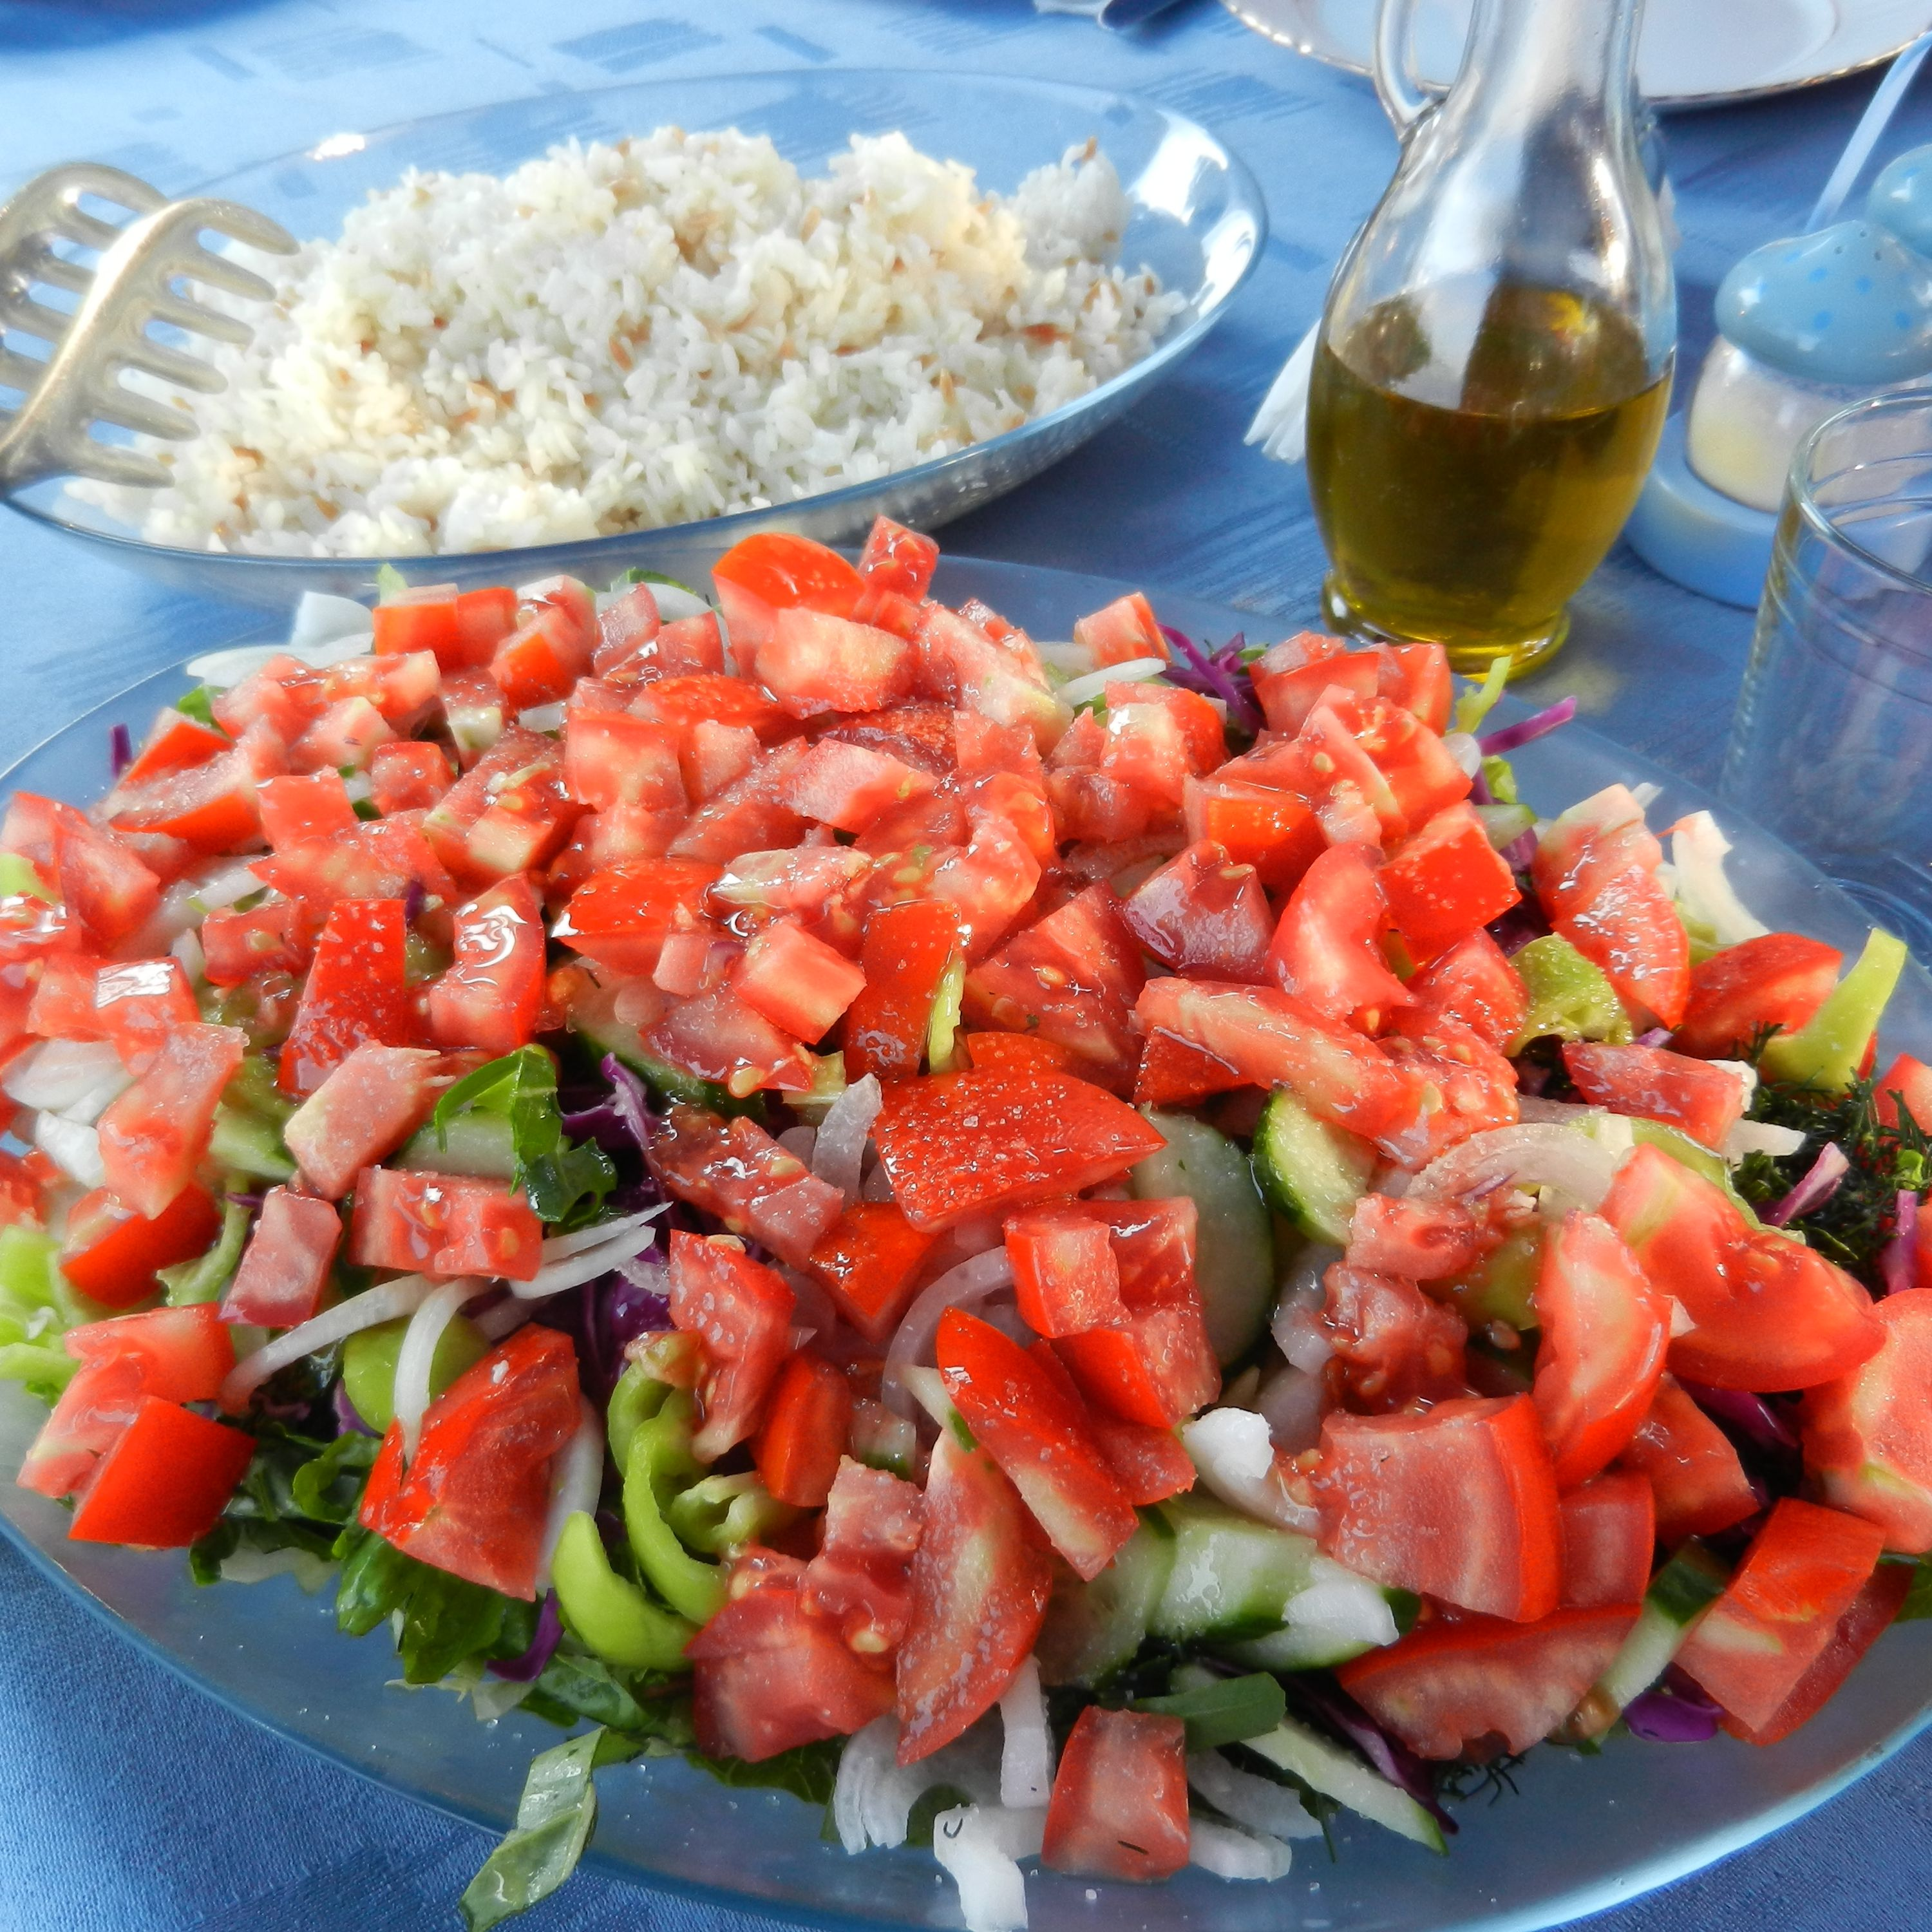 Turkish Shepherd's Salad (Çoban Salatası)